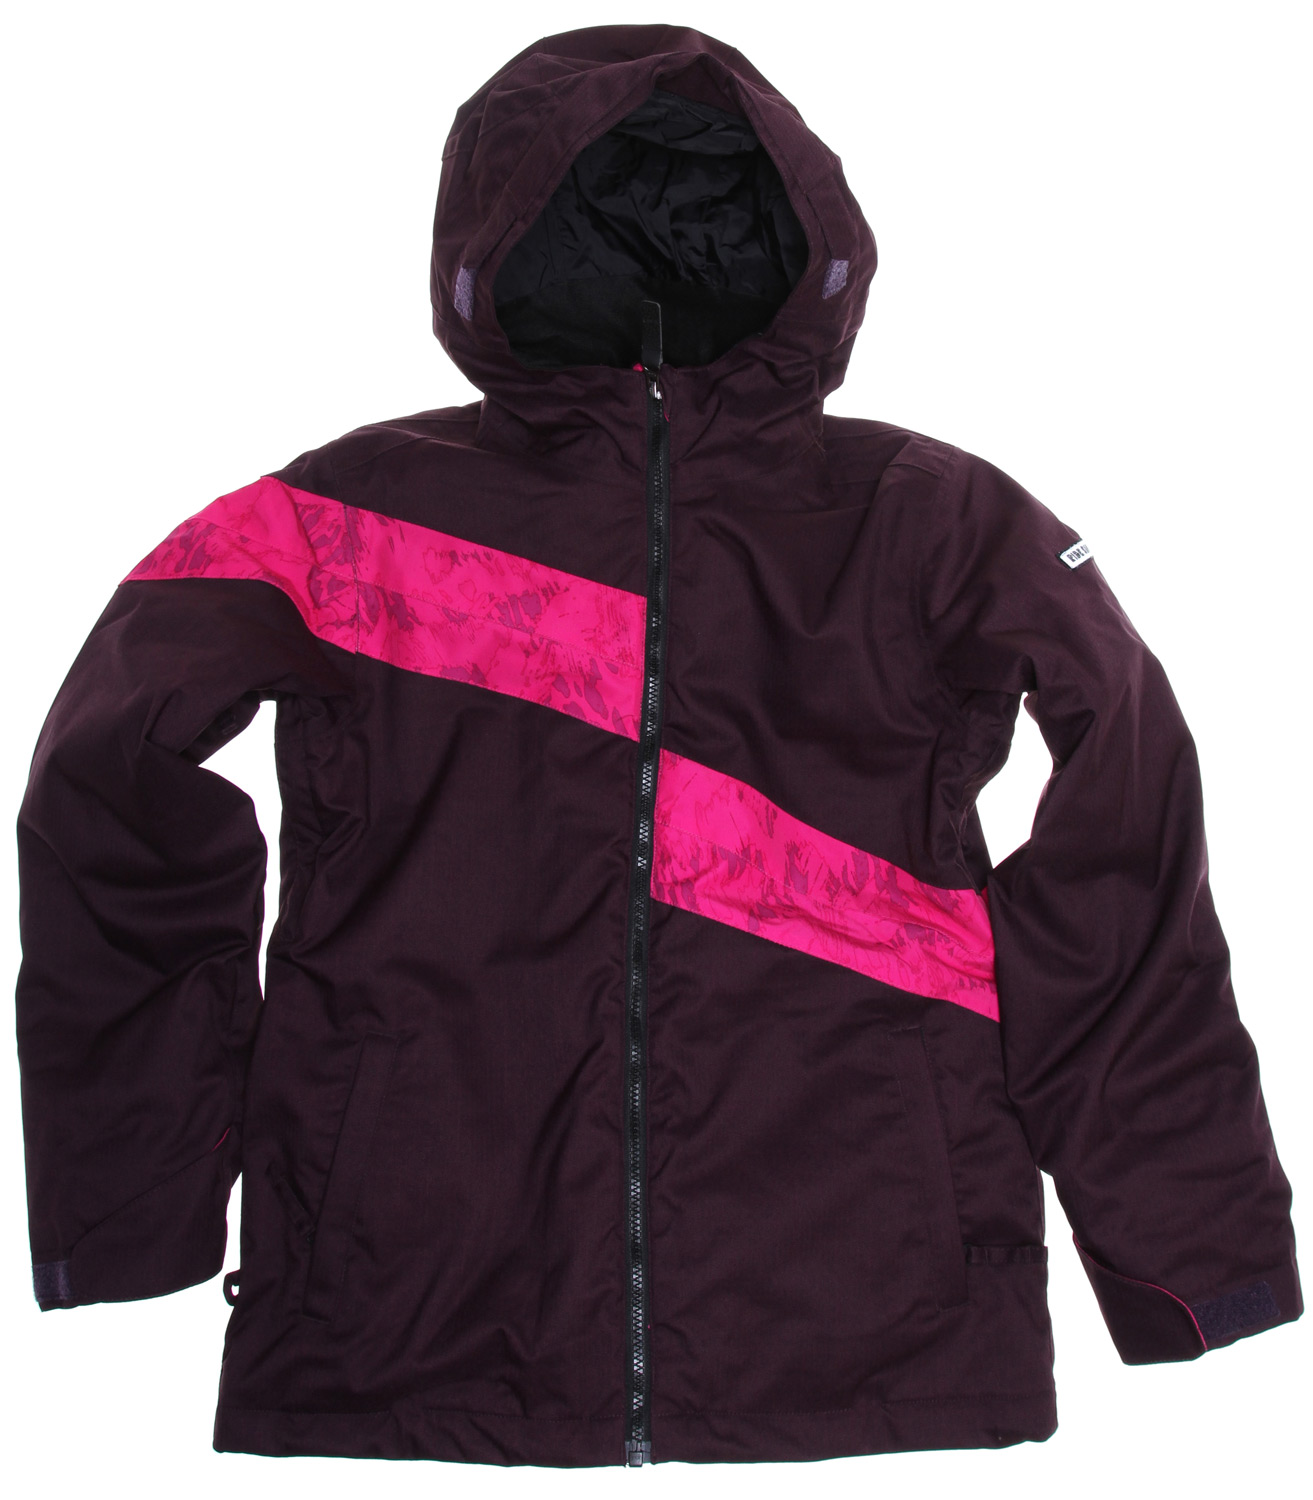 "Snowboard The Ride Chevelle Insulated girl's snowboard jacket comes complete with a Zip In/Out Poly Fleece jacket, 5k/5k waterproof breathable rated shell and 80g Poly Insulation making for a youth jacket that isn't short on features or style.Key Features of the Ride Chevelle Snowboard Jacket: 5,000mm Waterproof 5,000g Breathability 80g Poly Insulation with Taffeta Lining Zip In/Out Poly Fleece Sweat Jacket Growth Seams at the Sleeve Hem That Extend out 1 1/2"" in Length Girls Snowboard Jacket with Attached Powder Skirt Unlined Vents Velvety Comfort Chin Guard and Inner Collar Adjustable Cuffs with Glove Hook Loops Attached Hood Adjustable Elastic Hood Adjustments Inner Front Pocket One-Handed Draw Cord Inside Media Pocket Lift Ticket Self-Fabric Loop Front Micro-Fleece Lined Toaster Pockets - $87.85"